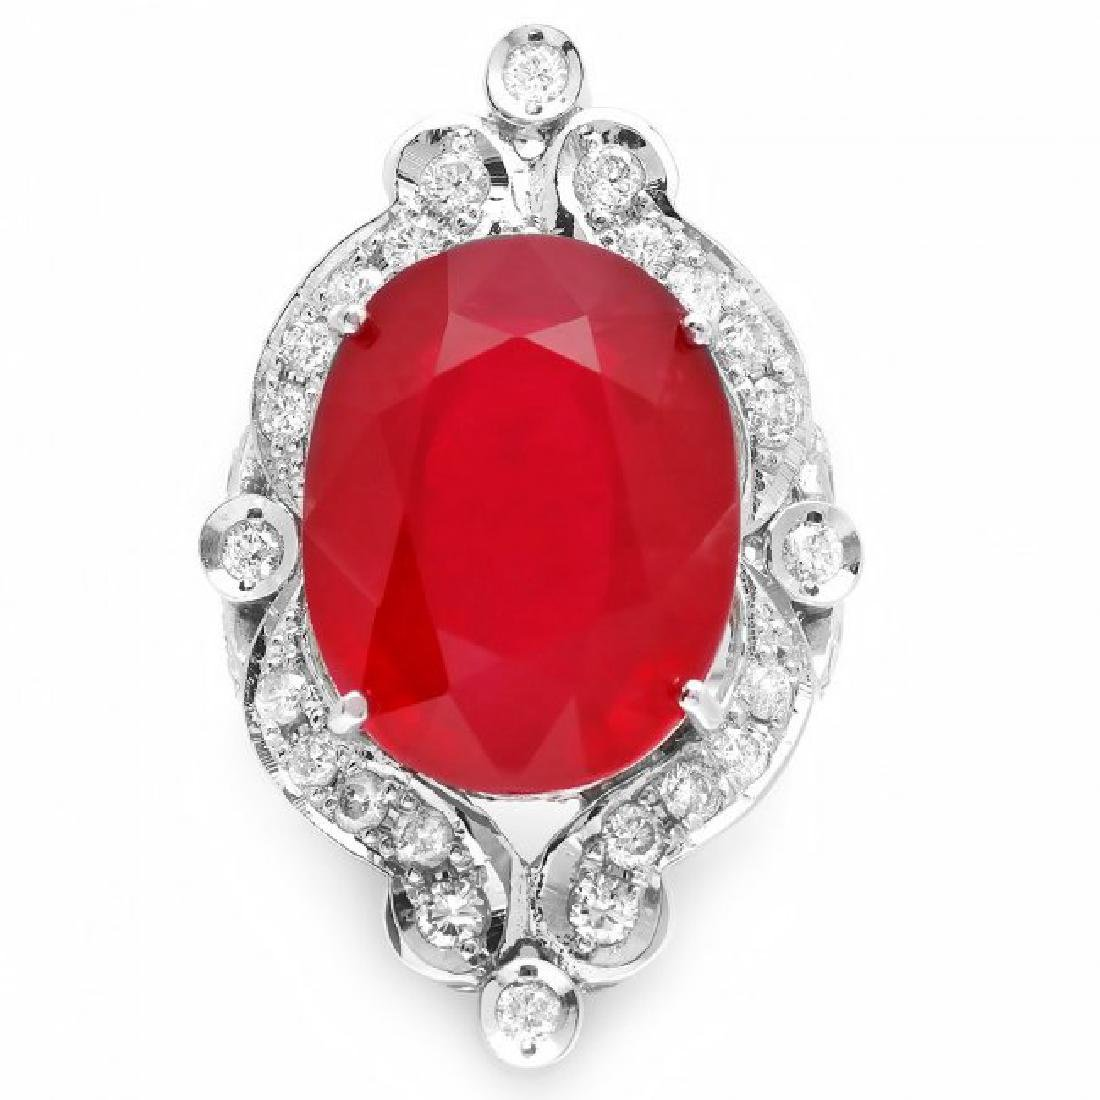 14k White Gold 22.00ct Ruby 1.30ct Diamond Ring